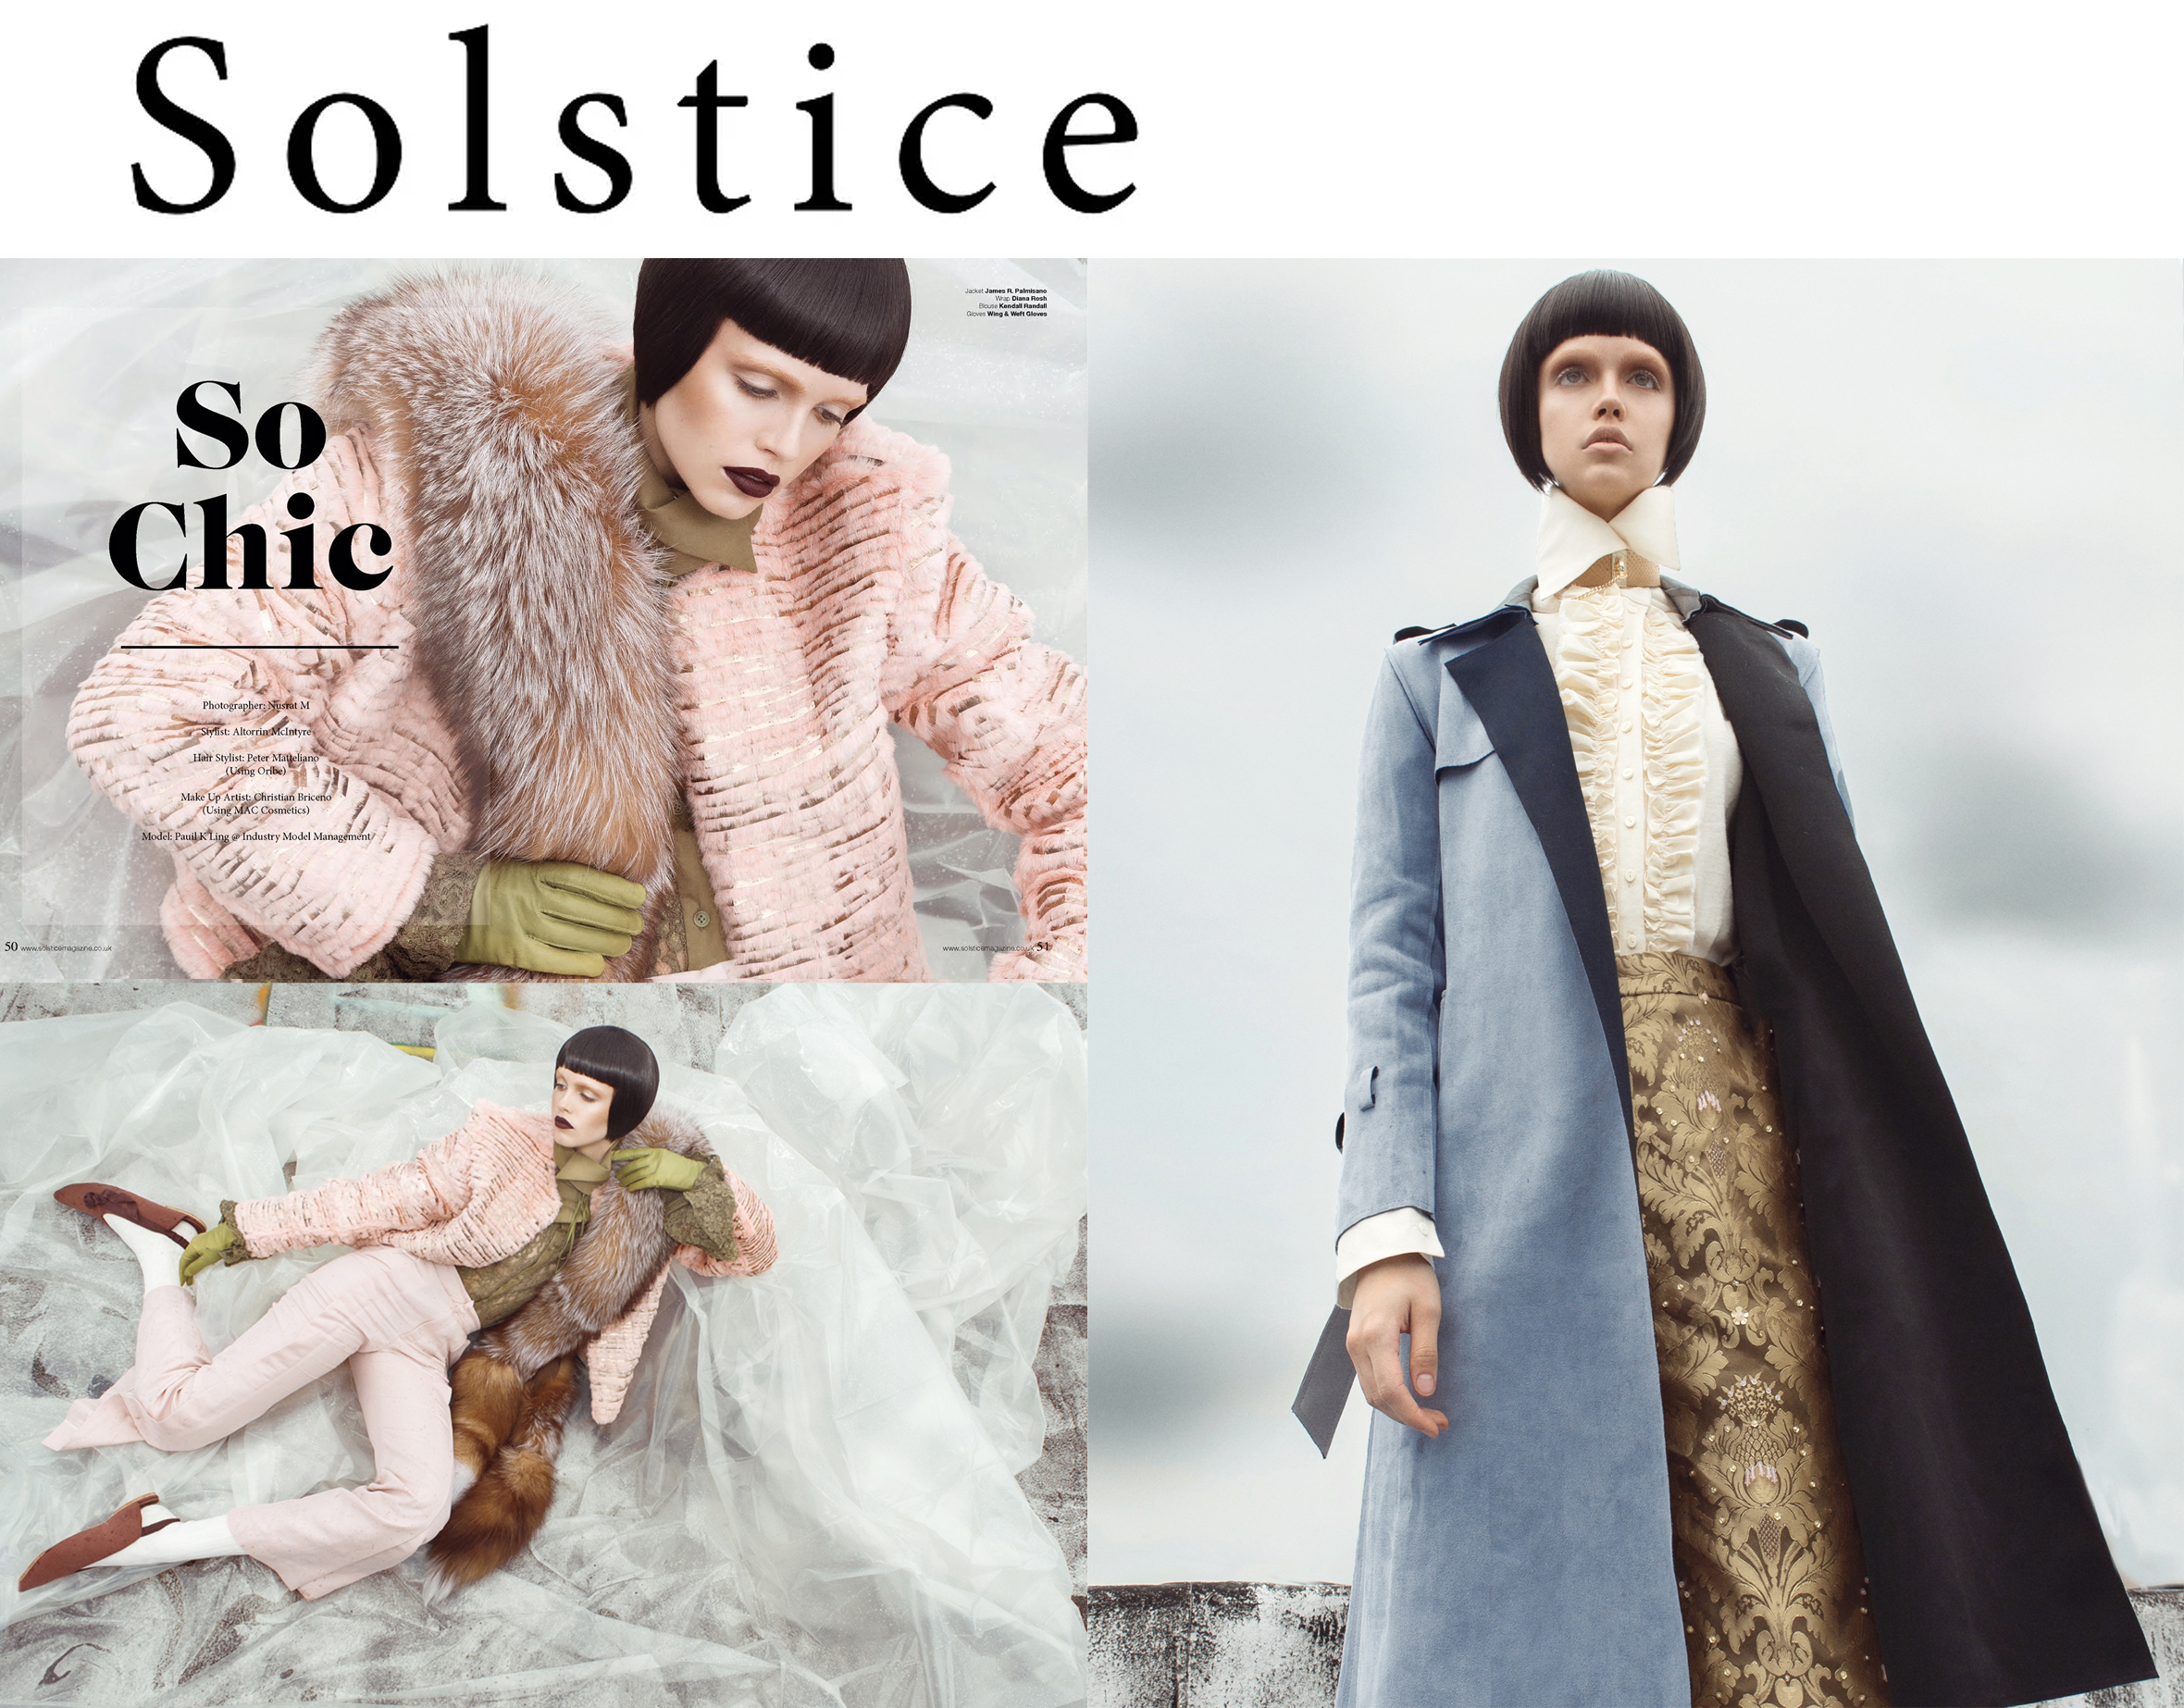 Solstice Magazine fashion editorial issue feature Kelsey Randall olive green lace blouse pink suit cream flannel ruffle button down blouse pale blue suede coat slides sleek hair boy made-to-measure luxury fashion womenswear bespoke custom made in New York City NYC Brooklyn Bushwick handcrafted luxury fashion sustainable ethical ones to watch emerging designer studio 6800 styling Altorrin makeup Christian Briceno hair Peter Matteliano model Pauli Kling the industry model management